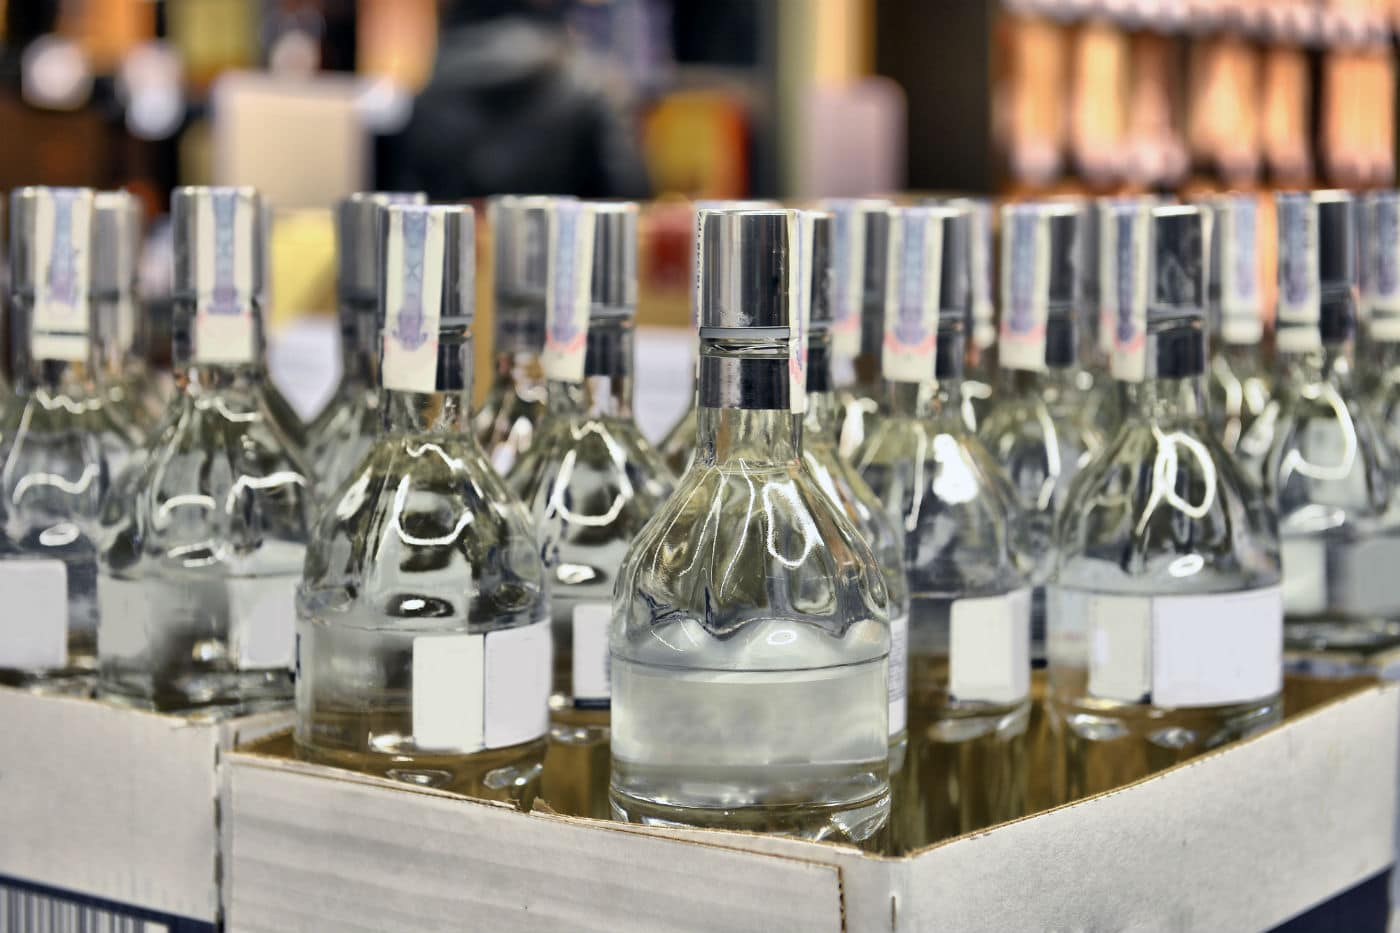 Bottles of Fake Vodka were Seized by alcohol enforcement polic